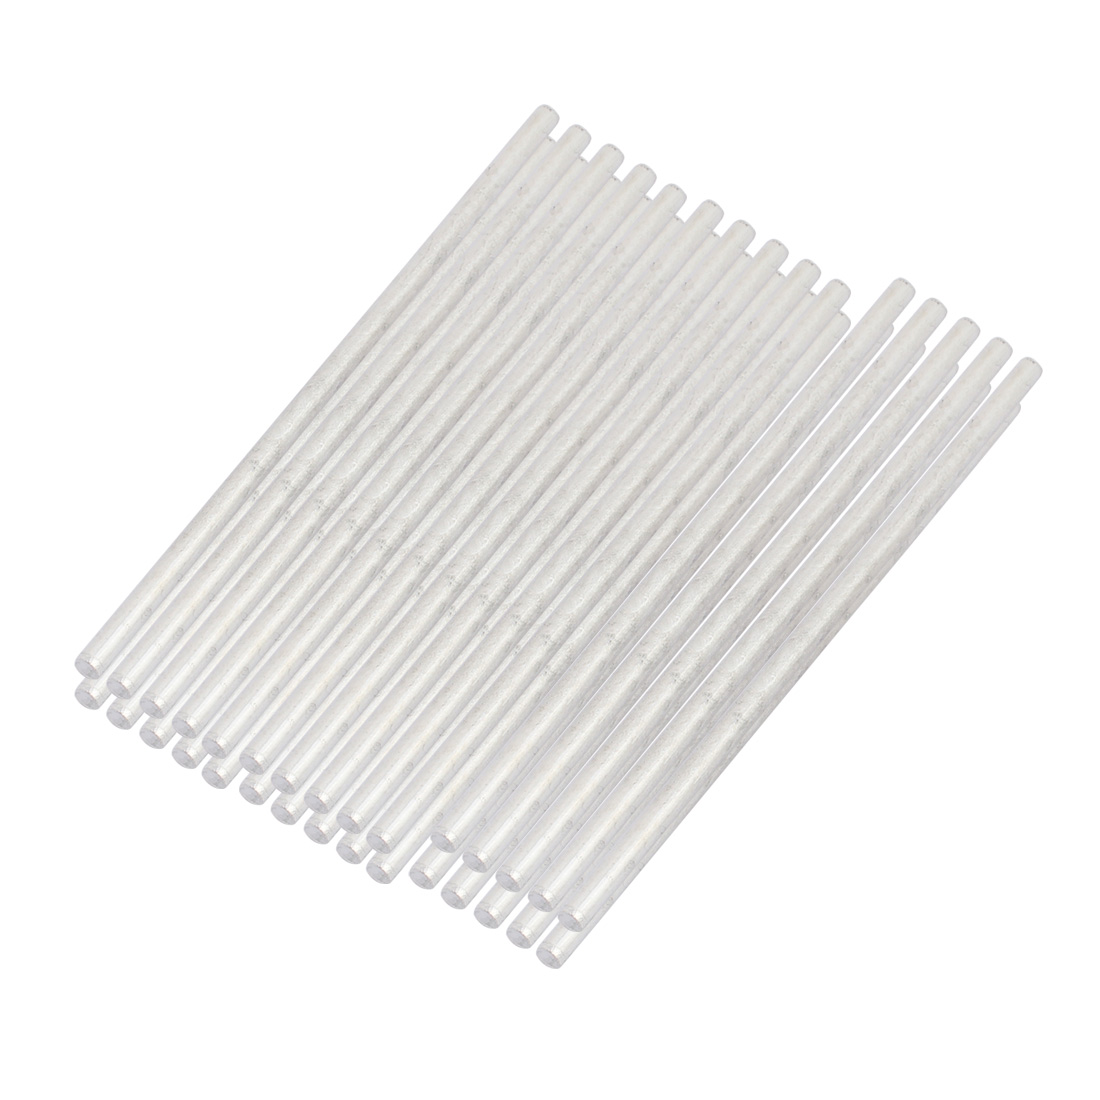 20Pcs Round Shaft Solid Steel Rods Axles 3mm x 90mm Silver Tone